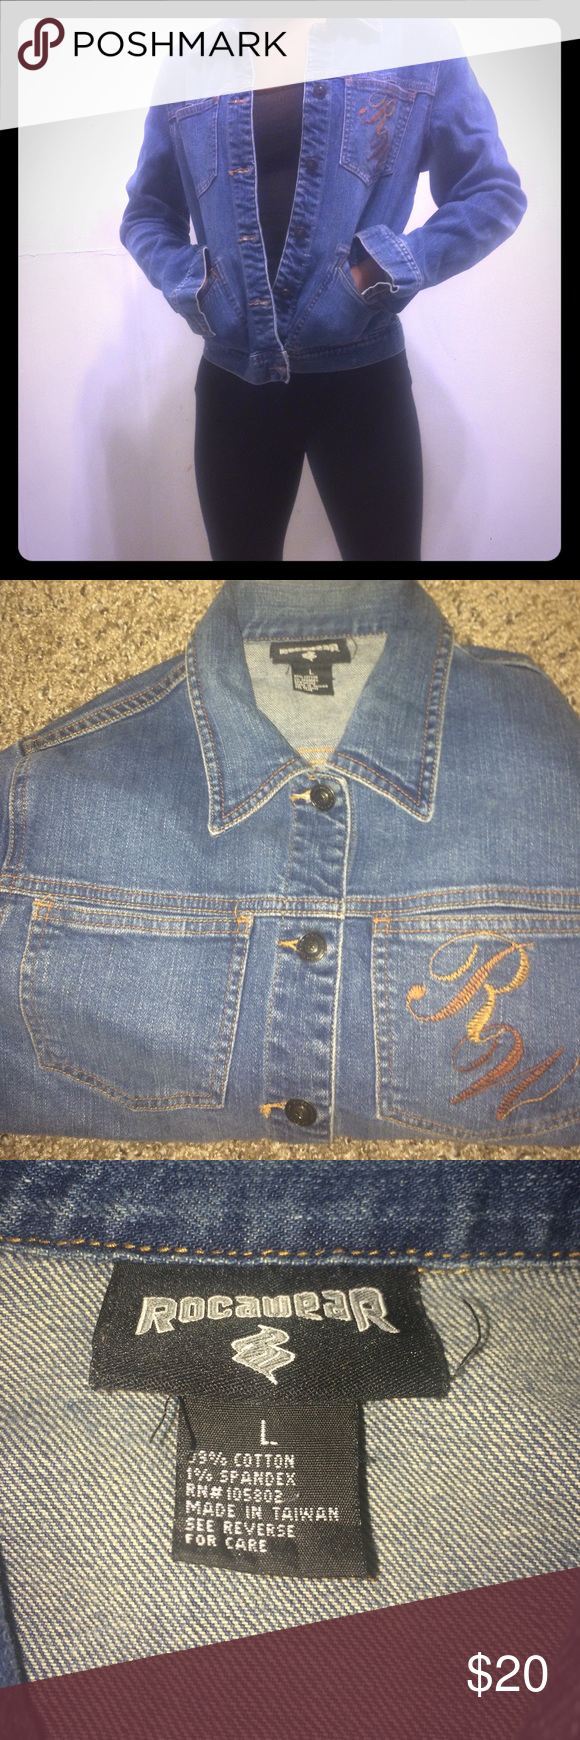 Jean Jacket Willing to negotiate on price! Feel free to make an offer  Rocawear Jackets & Coats Jean Jackets